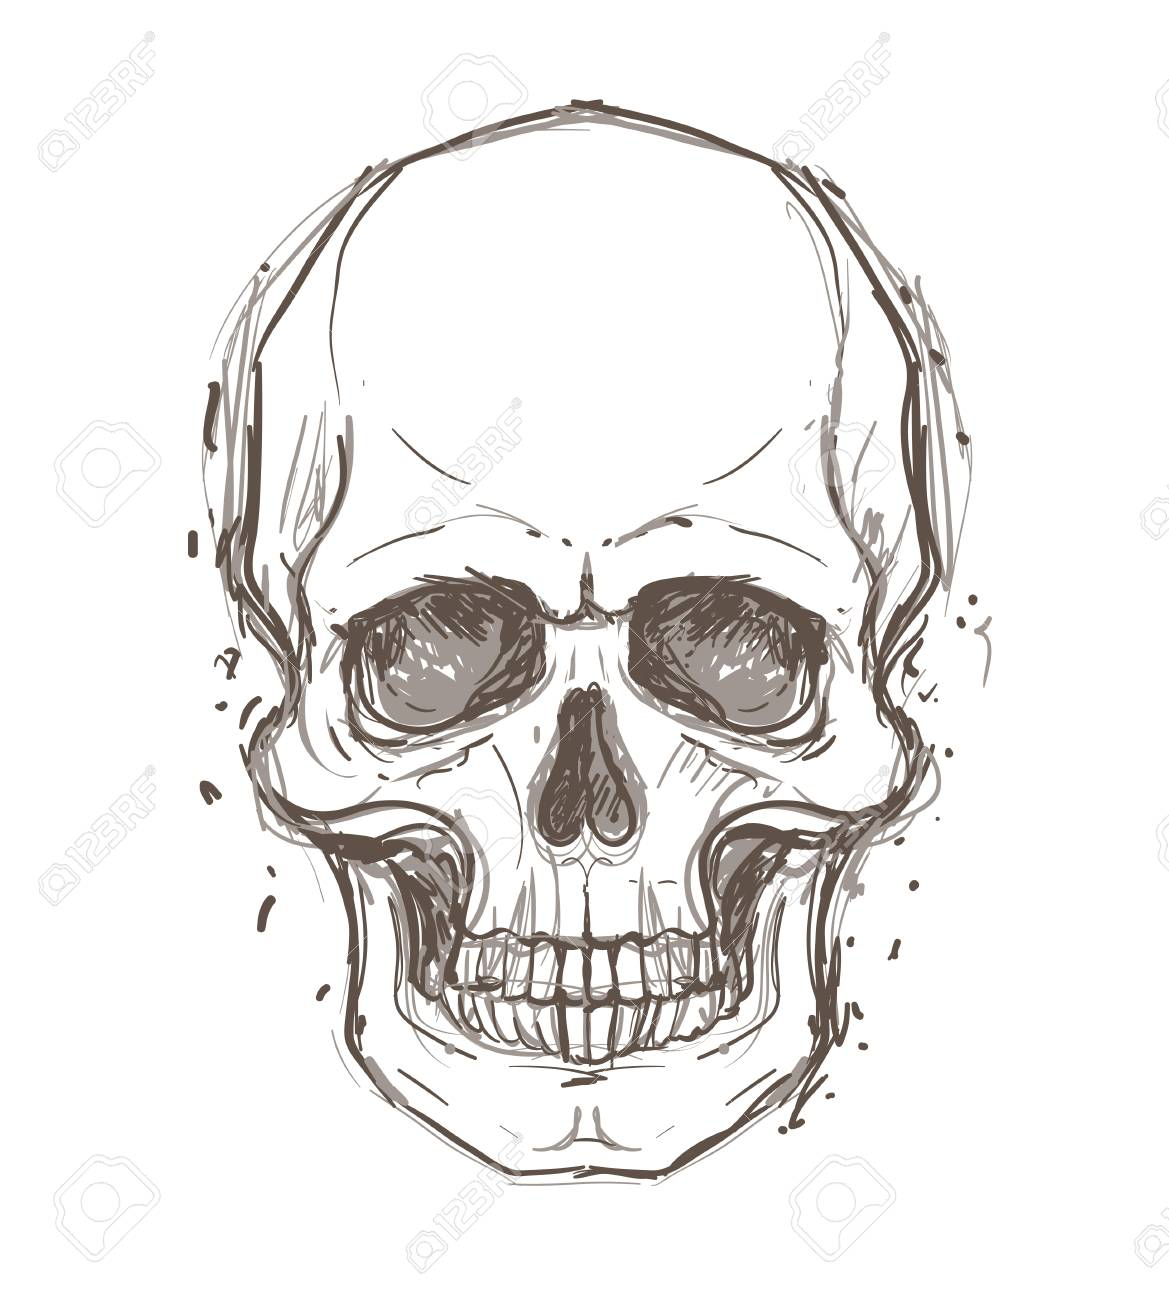 Sketchy Style Drawing Of Human Skull Human Head Isolated On Royalty Free Cliparts Vectors And Stock Illustration Image 87434602